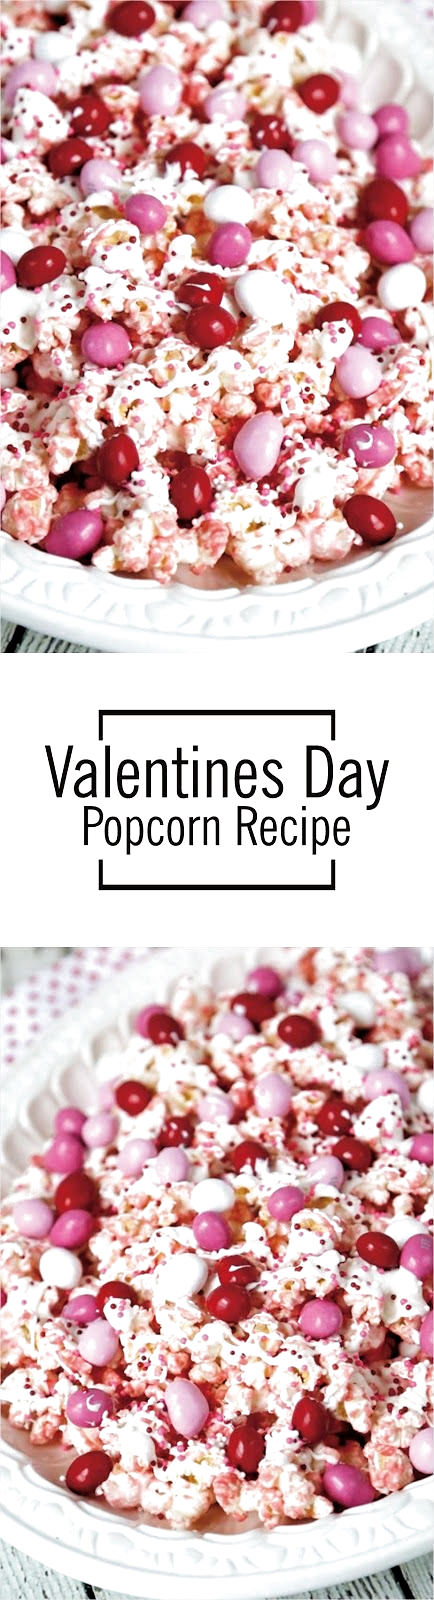 Valentines Day Popcorn Recipe    15 Tips To Prepare A Delicious Dinner On Valentines Day    Instead of buying a gift on Valentines day, you can prepare a perfect table for your beloved. But this time your table should be a little more elaborate and elaborate than normal days, so here are the little things you need to decorate the table and then fill it with delicious food...    Lets start with the designs that can be made on the table...  Its easier ... #Day #Popcorn #recipe #Valentines #valenti